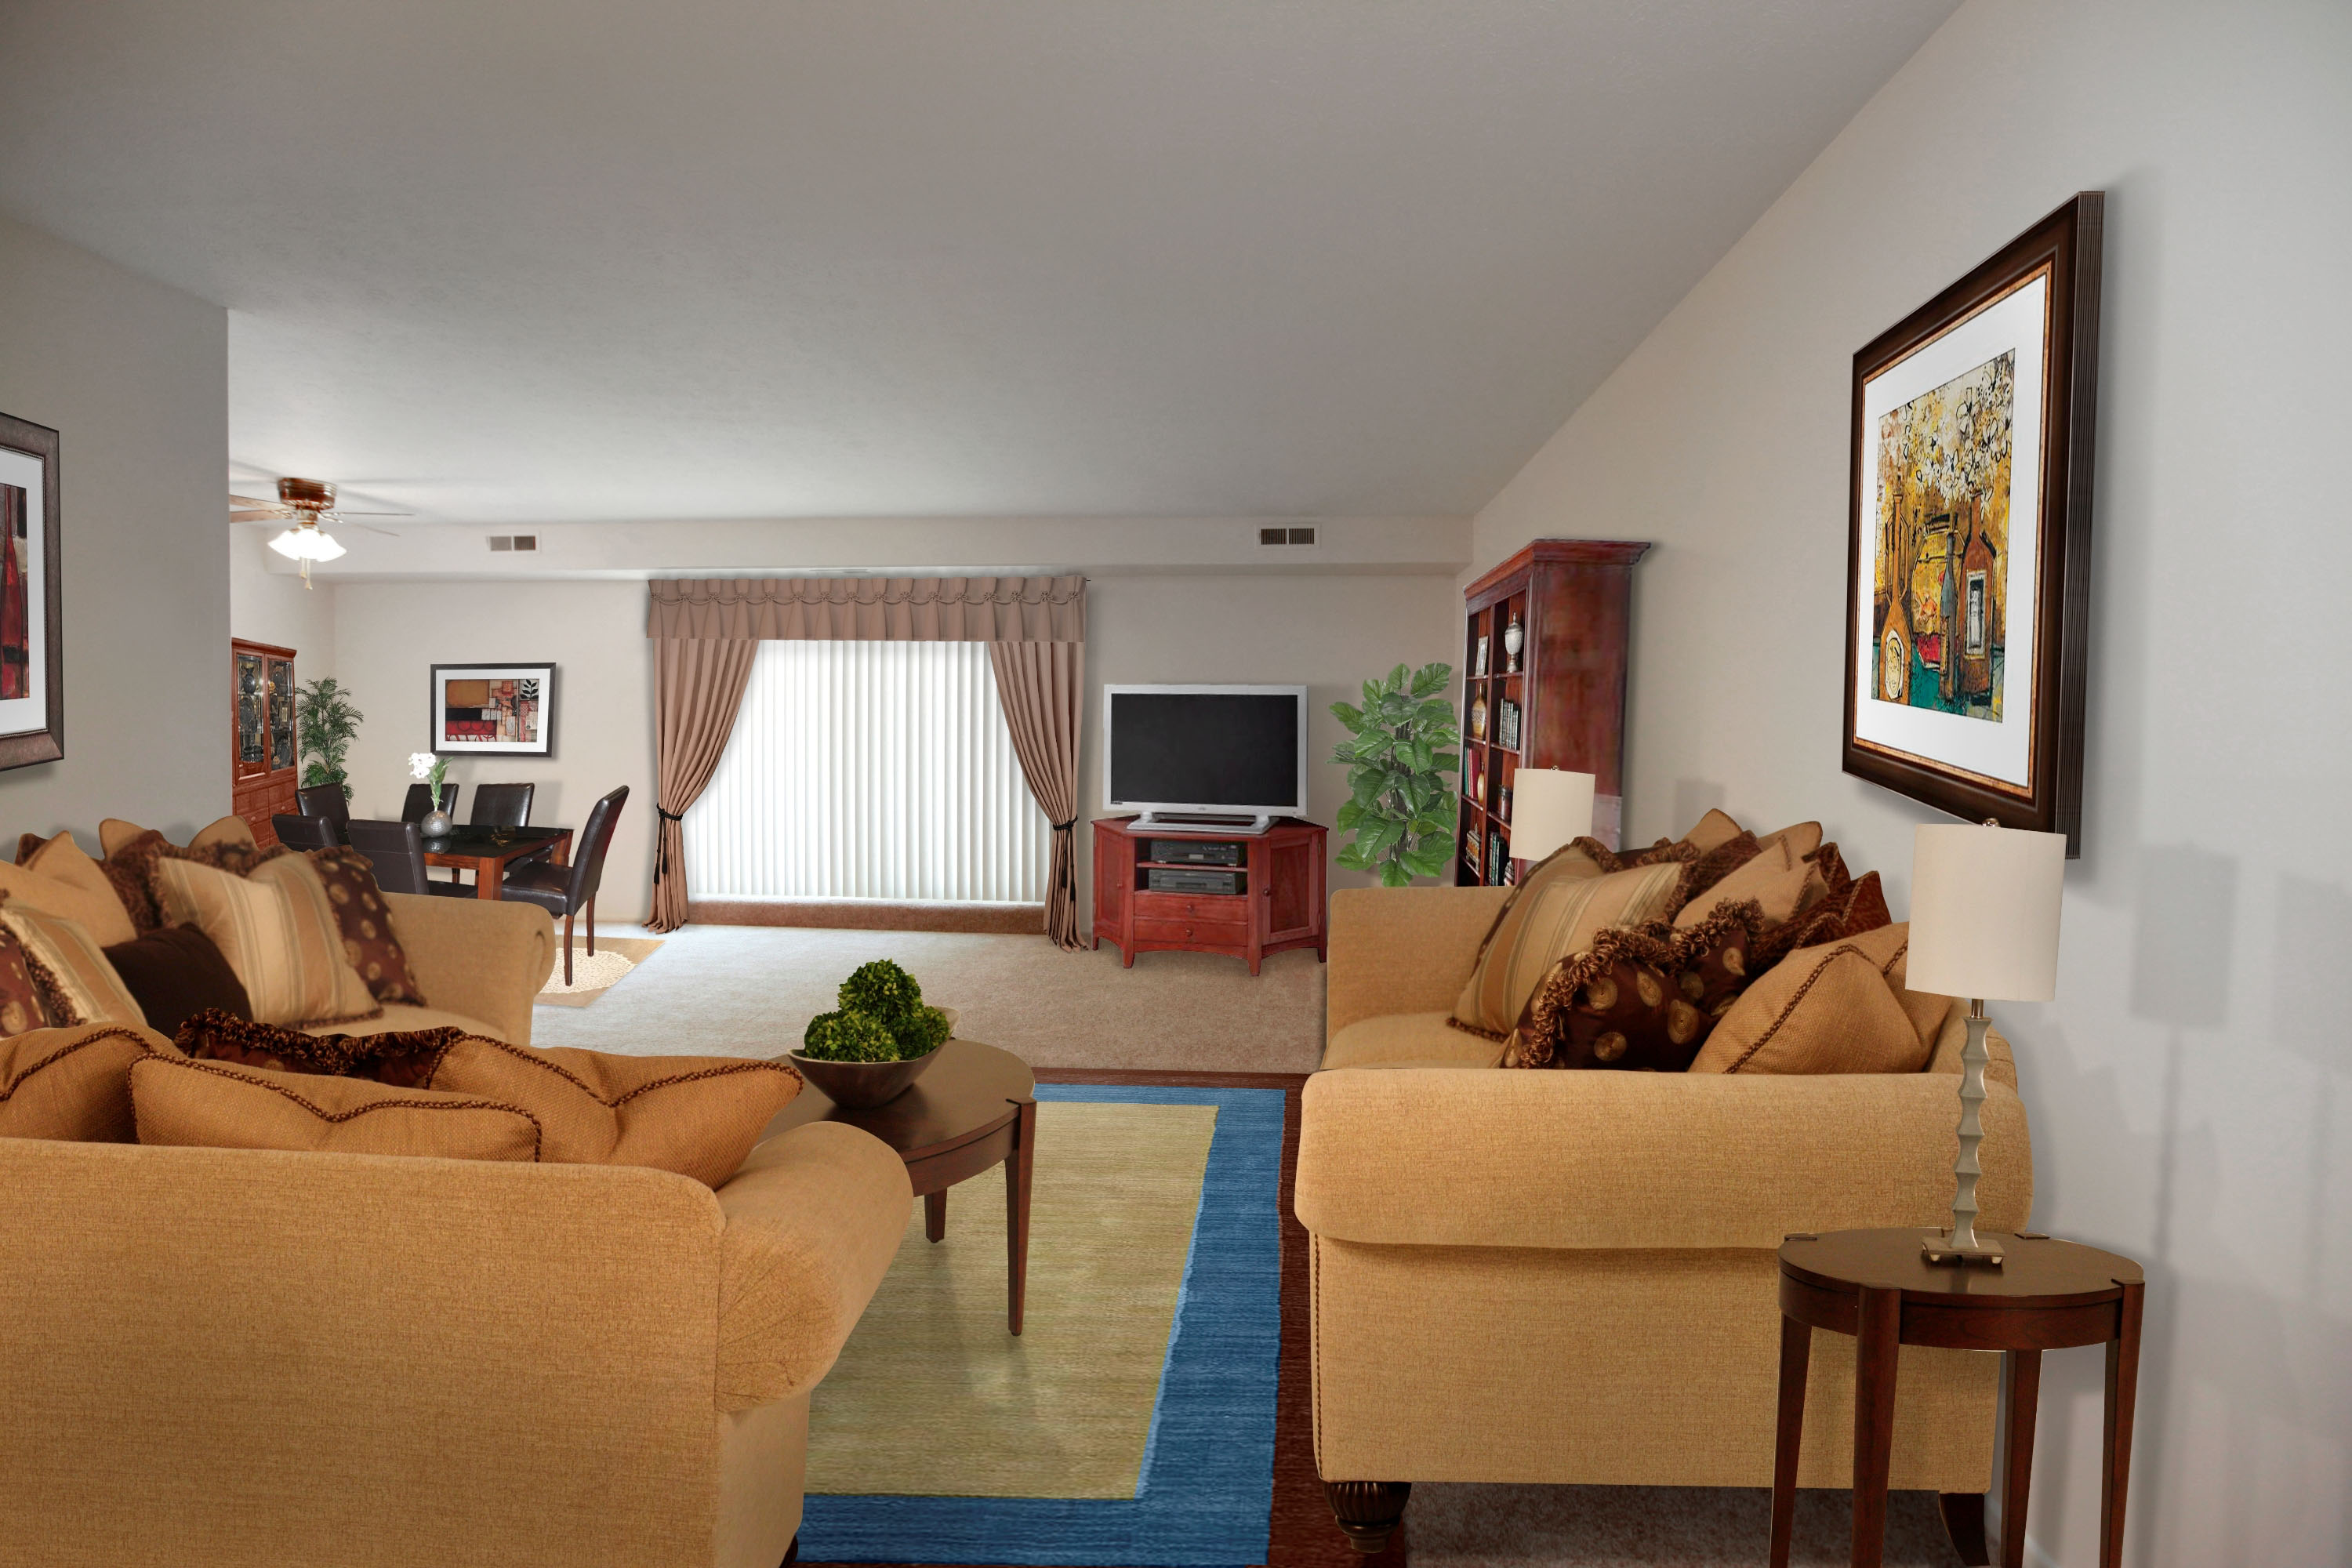 2A Living Room Furnished at the Greenridge on Euclid Apartments in Euclid, OH